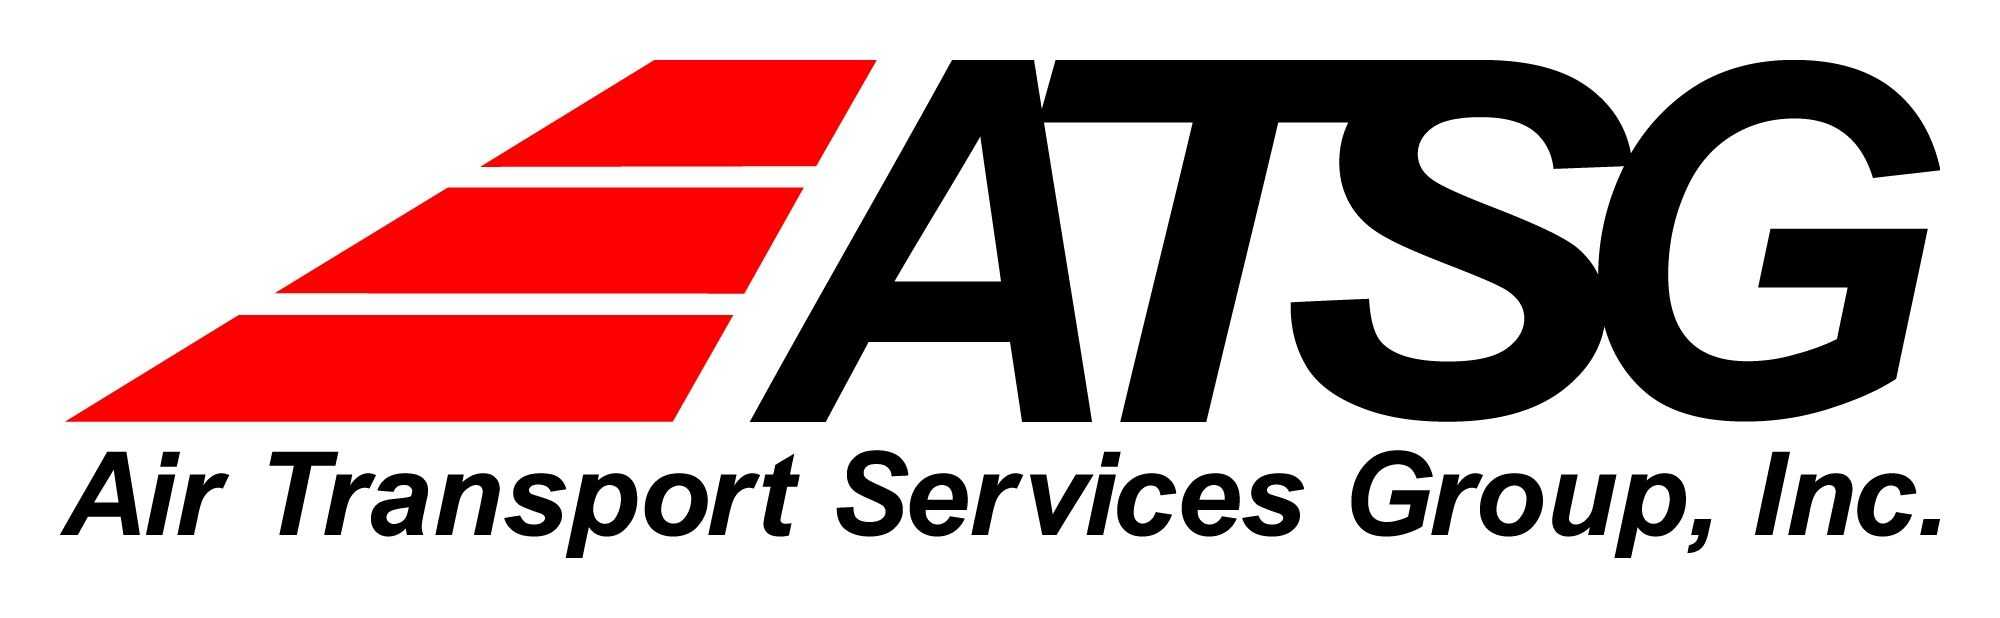 Air Transport Services Group Inc. (NASDAQ:ATSG)